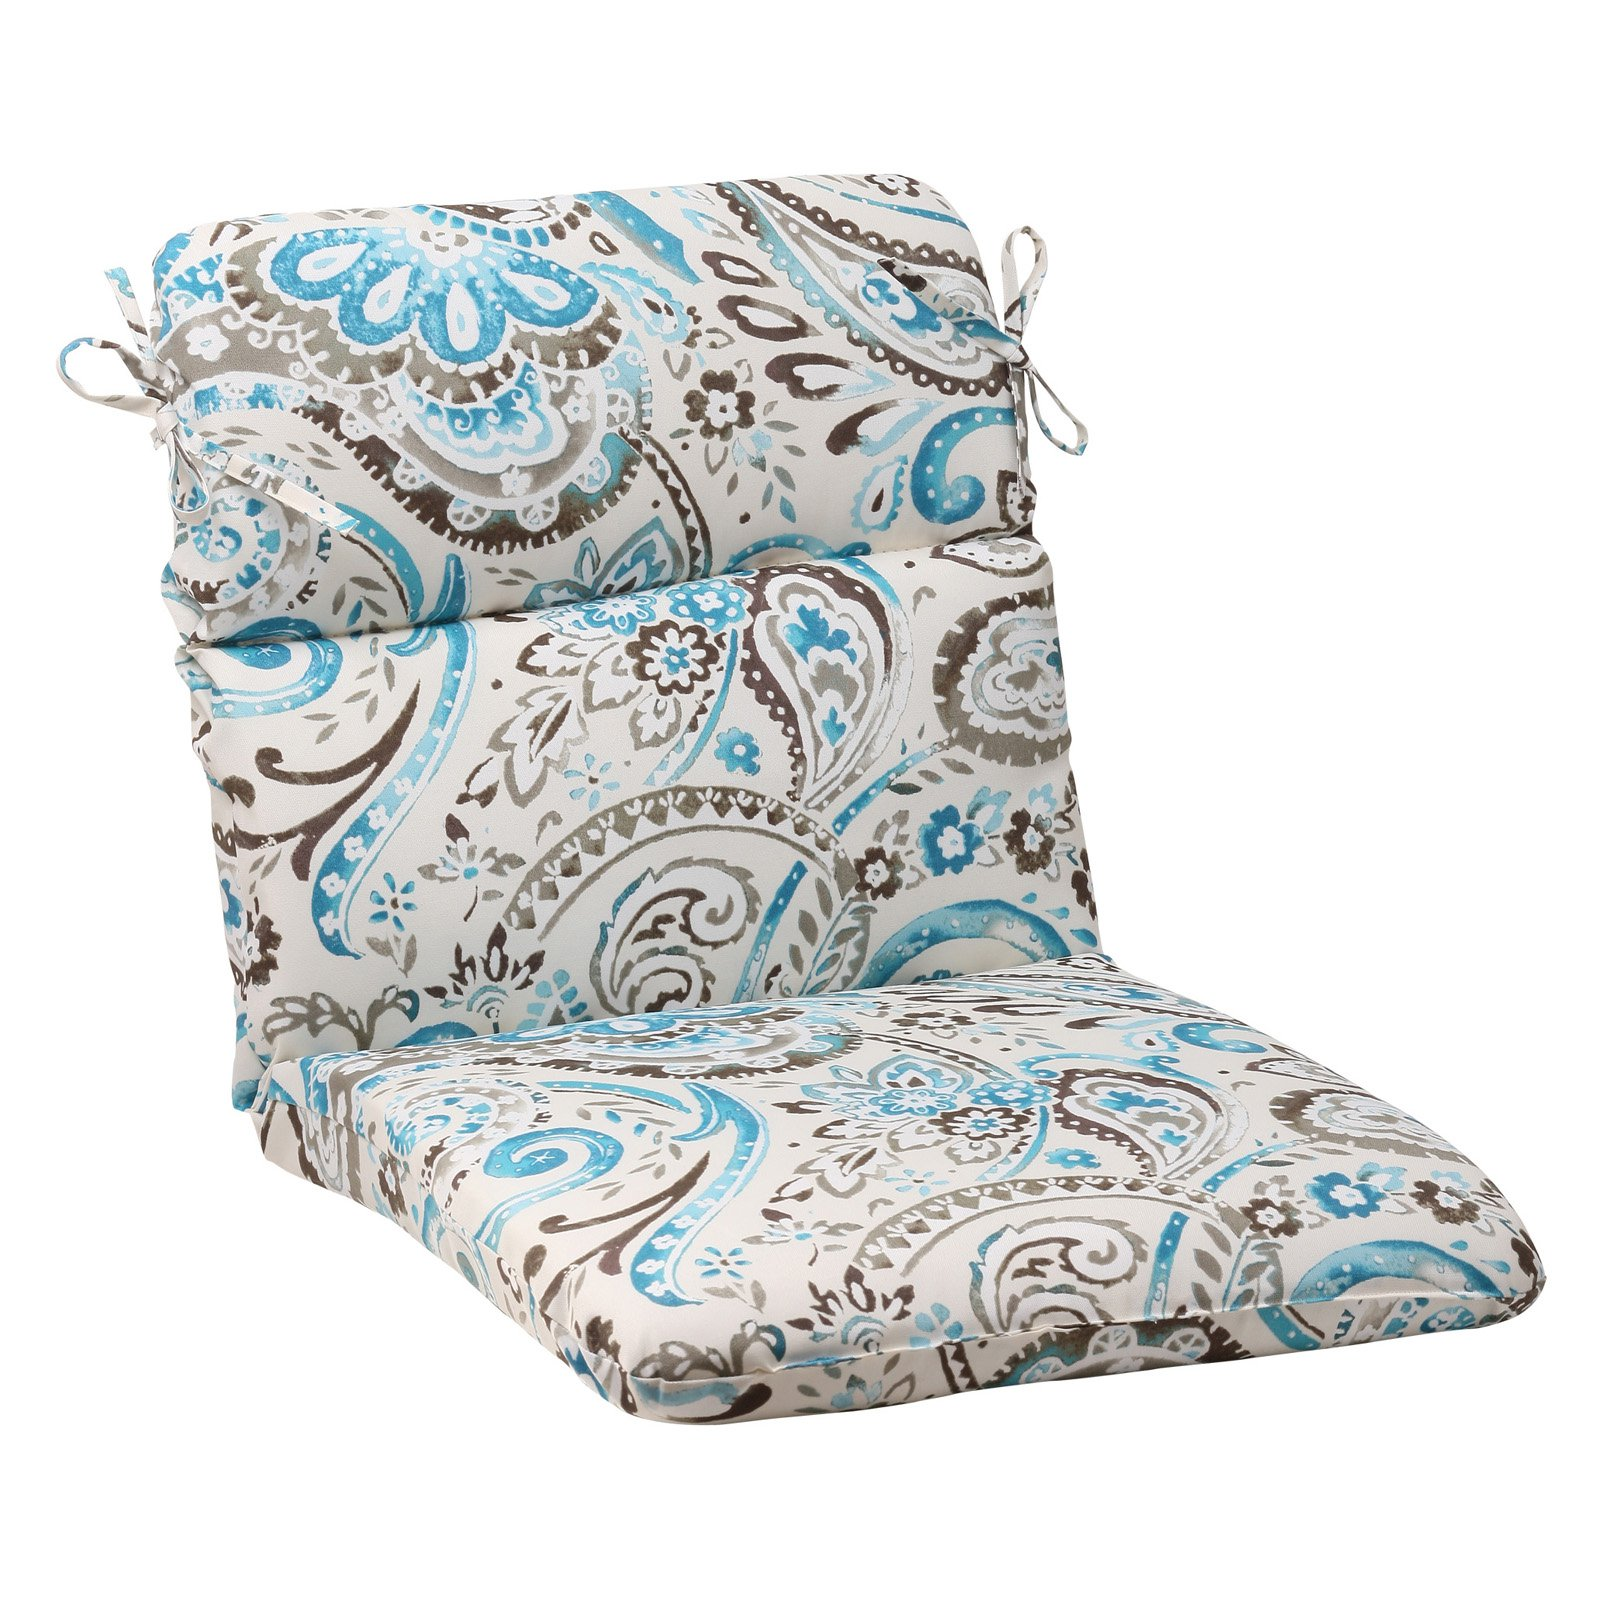 Pillow Perfect Outdoor/ Indoor Vermilya Tidepool Rounded Corners Chair Cushion